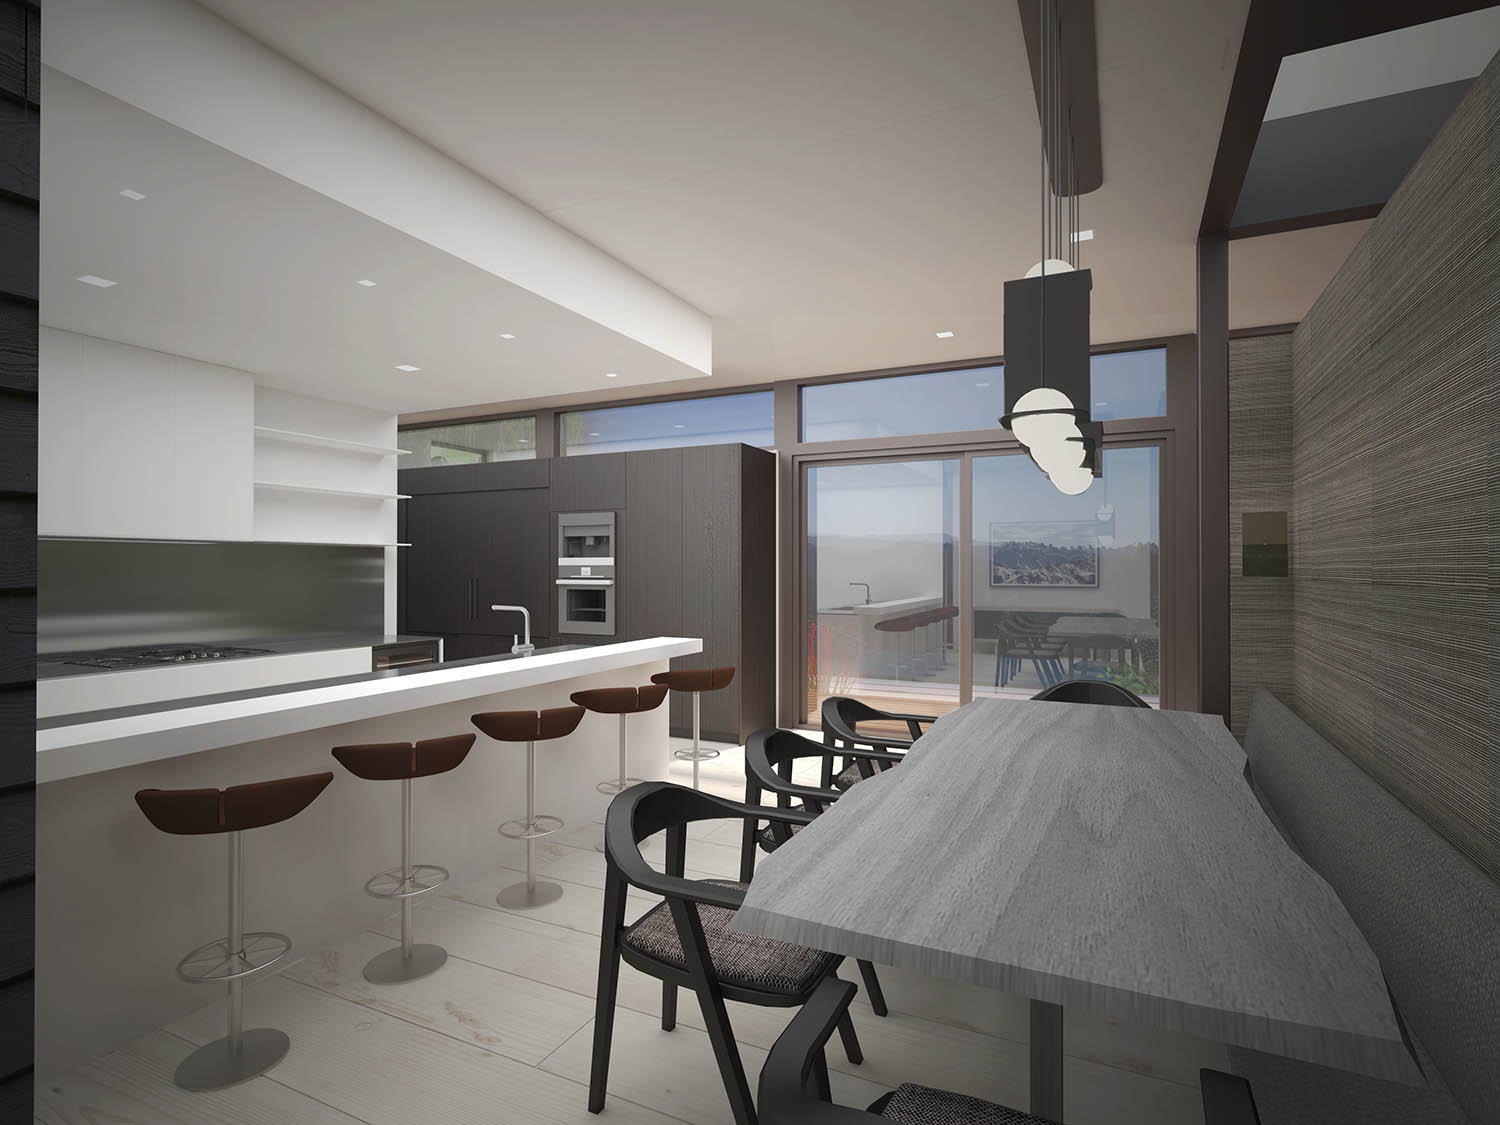 Kitchen and dining area render. Reddymade}